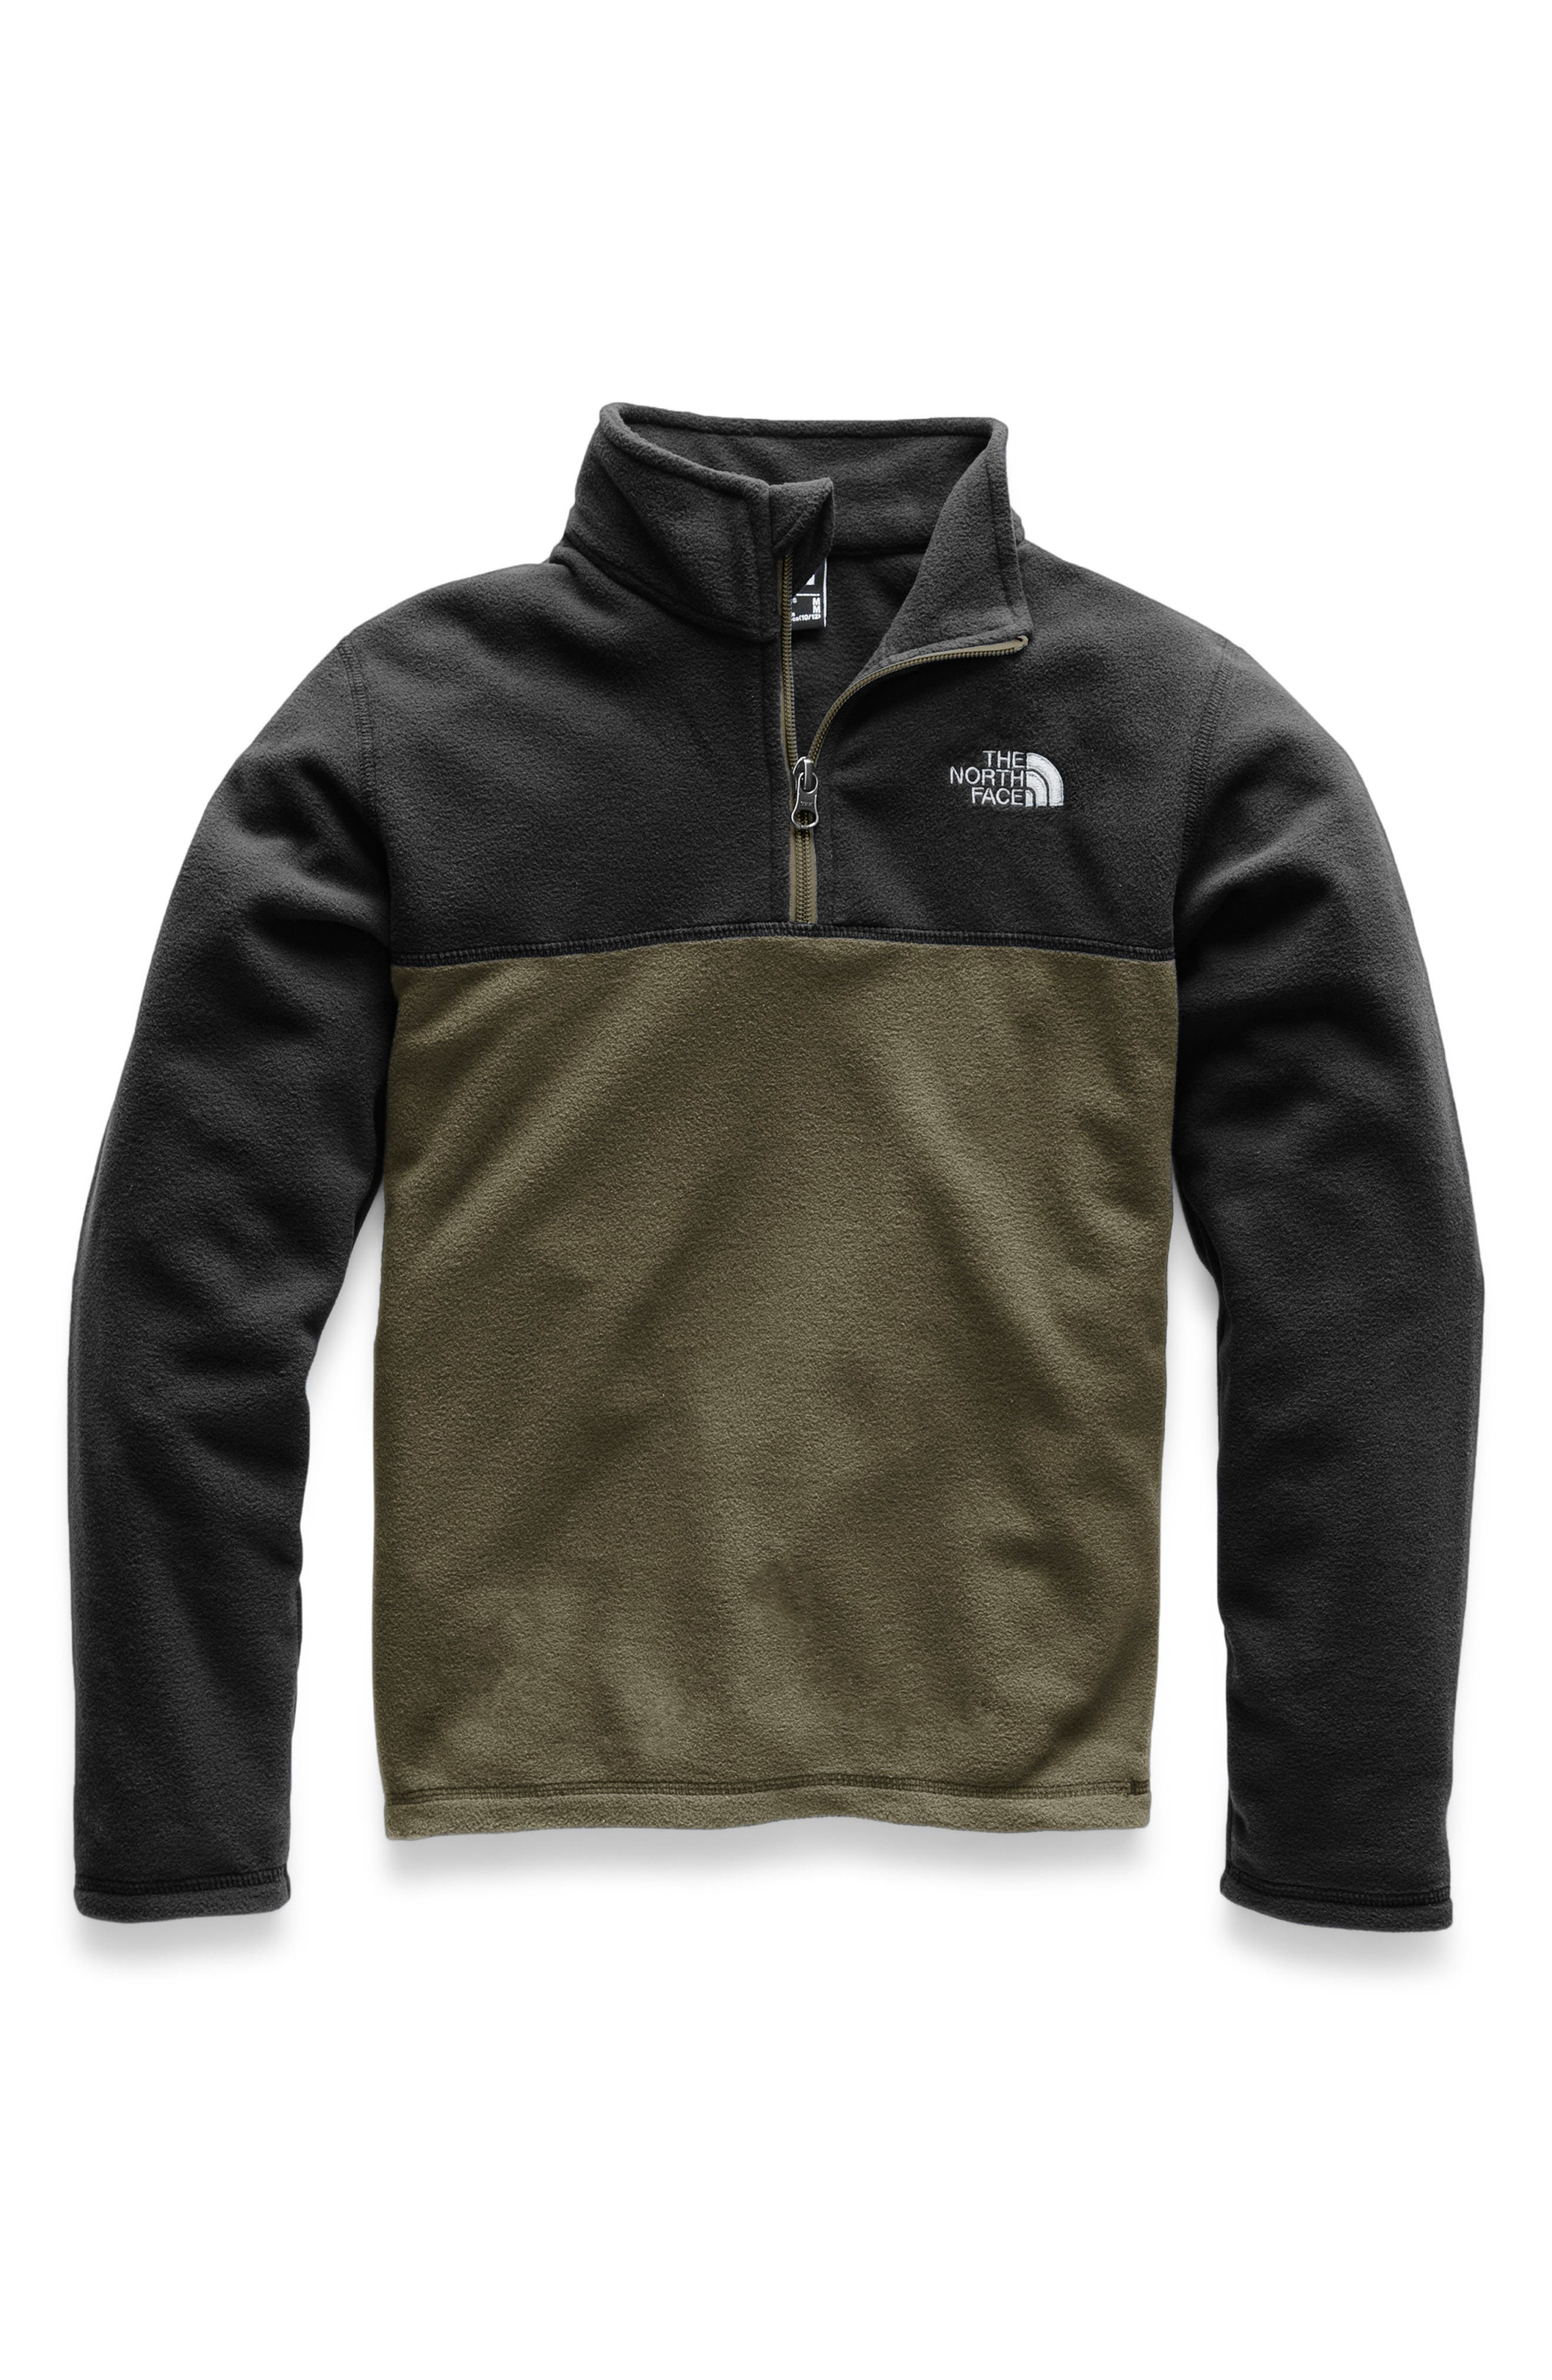 THE NORTH FACE, Glacier Quarter Zip Pullover, Main thumbnail 1, color, NEW TAUPE GREEN